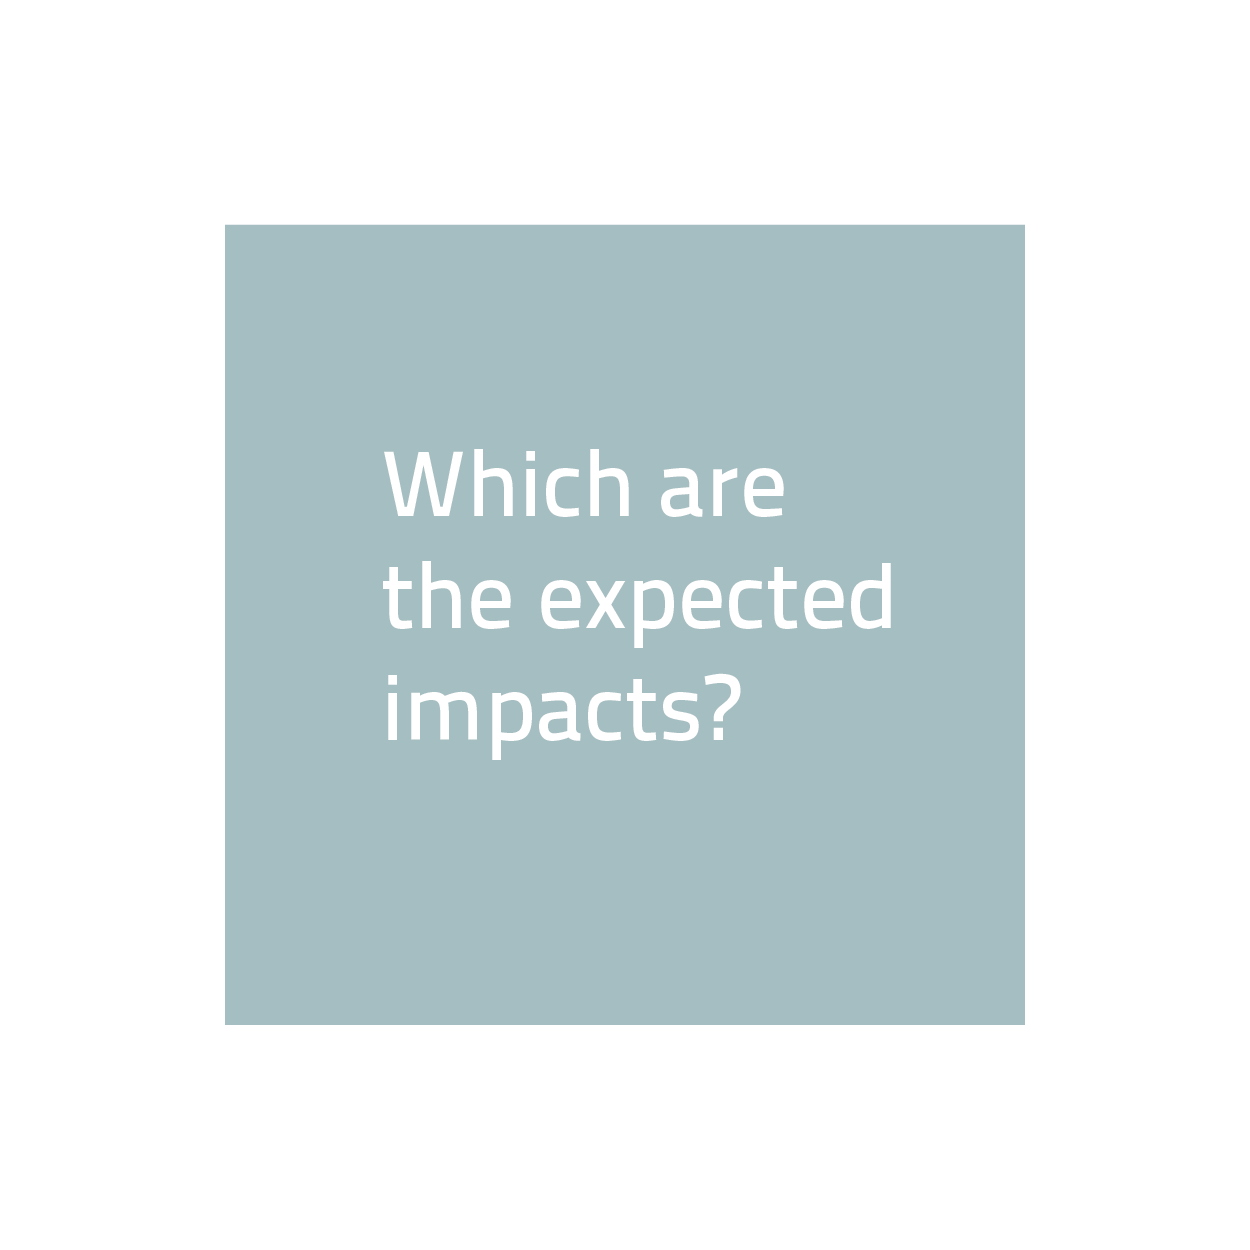 Which are the expected impacts?